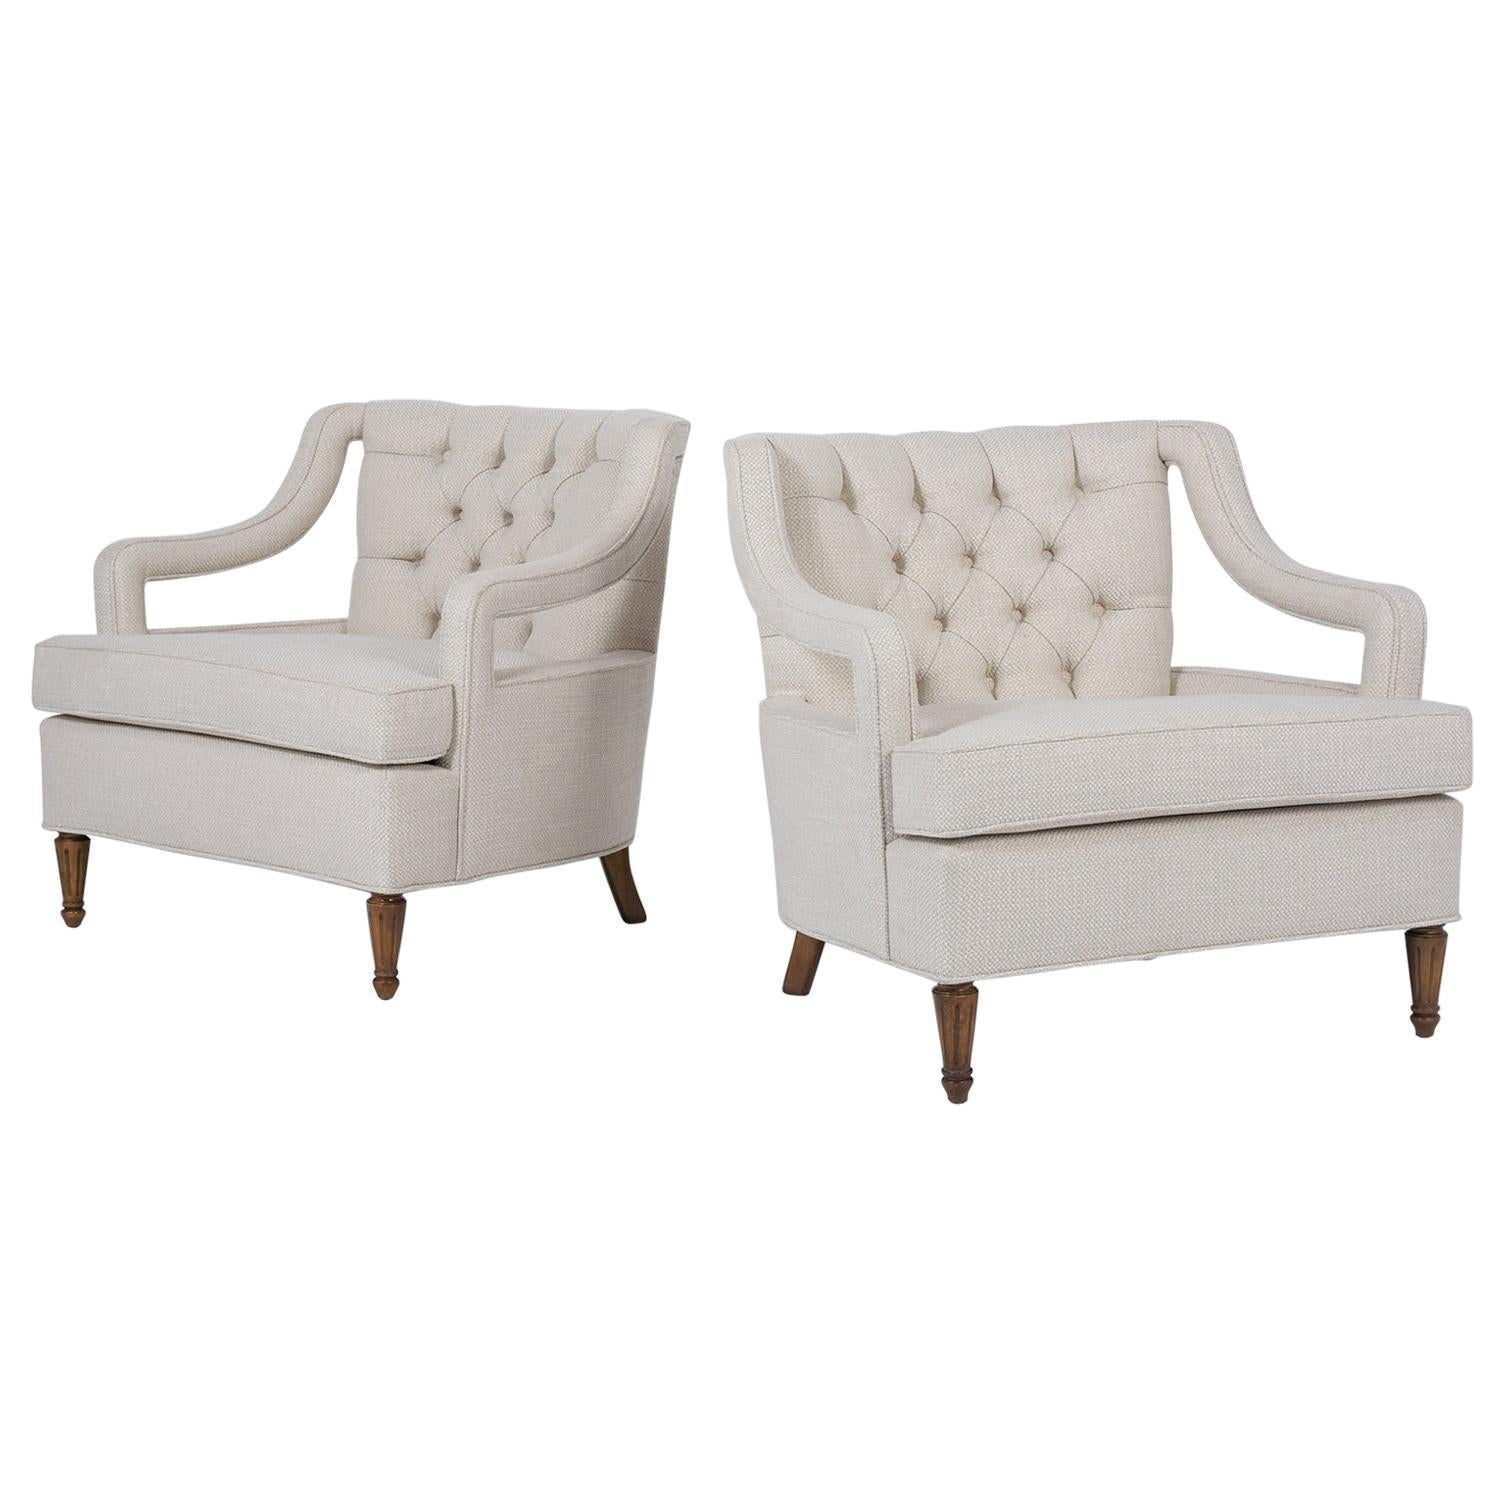 Vintage Tufted Mid-Century Lounge Chairs